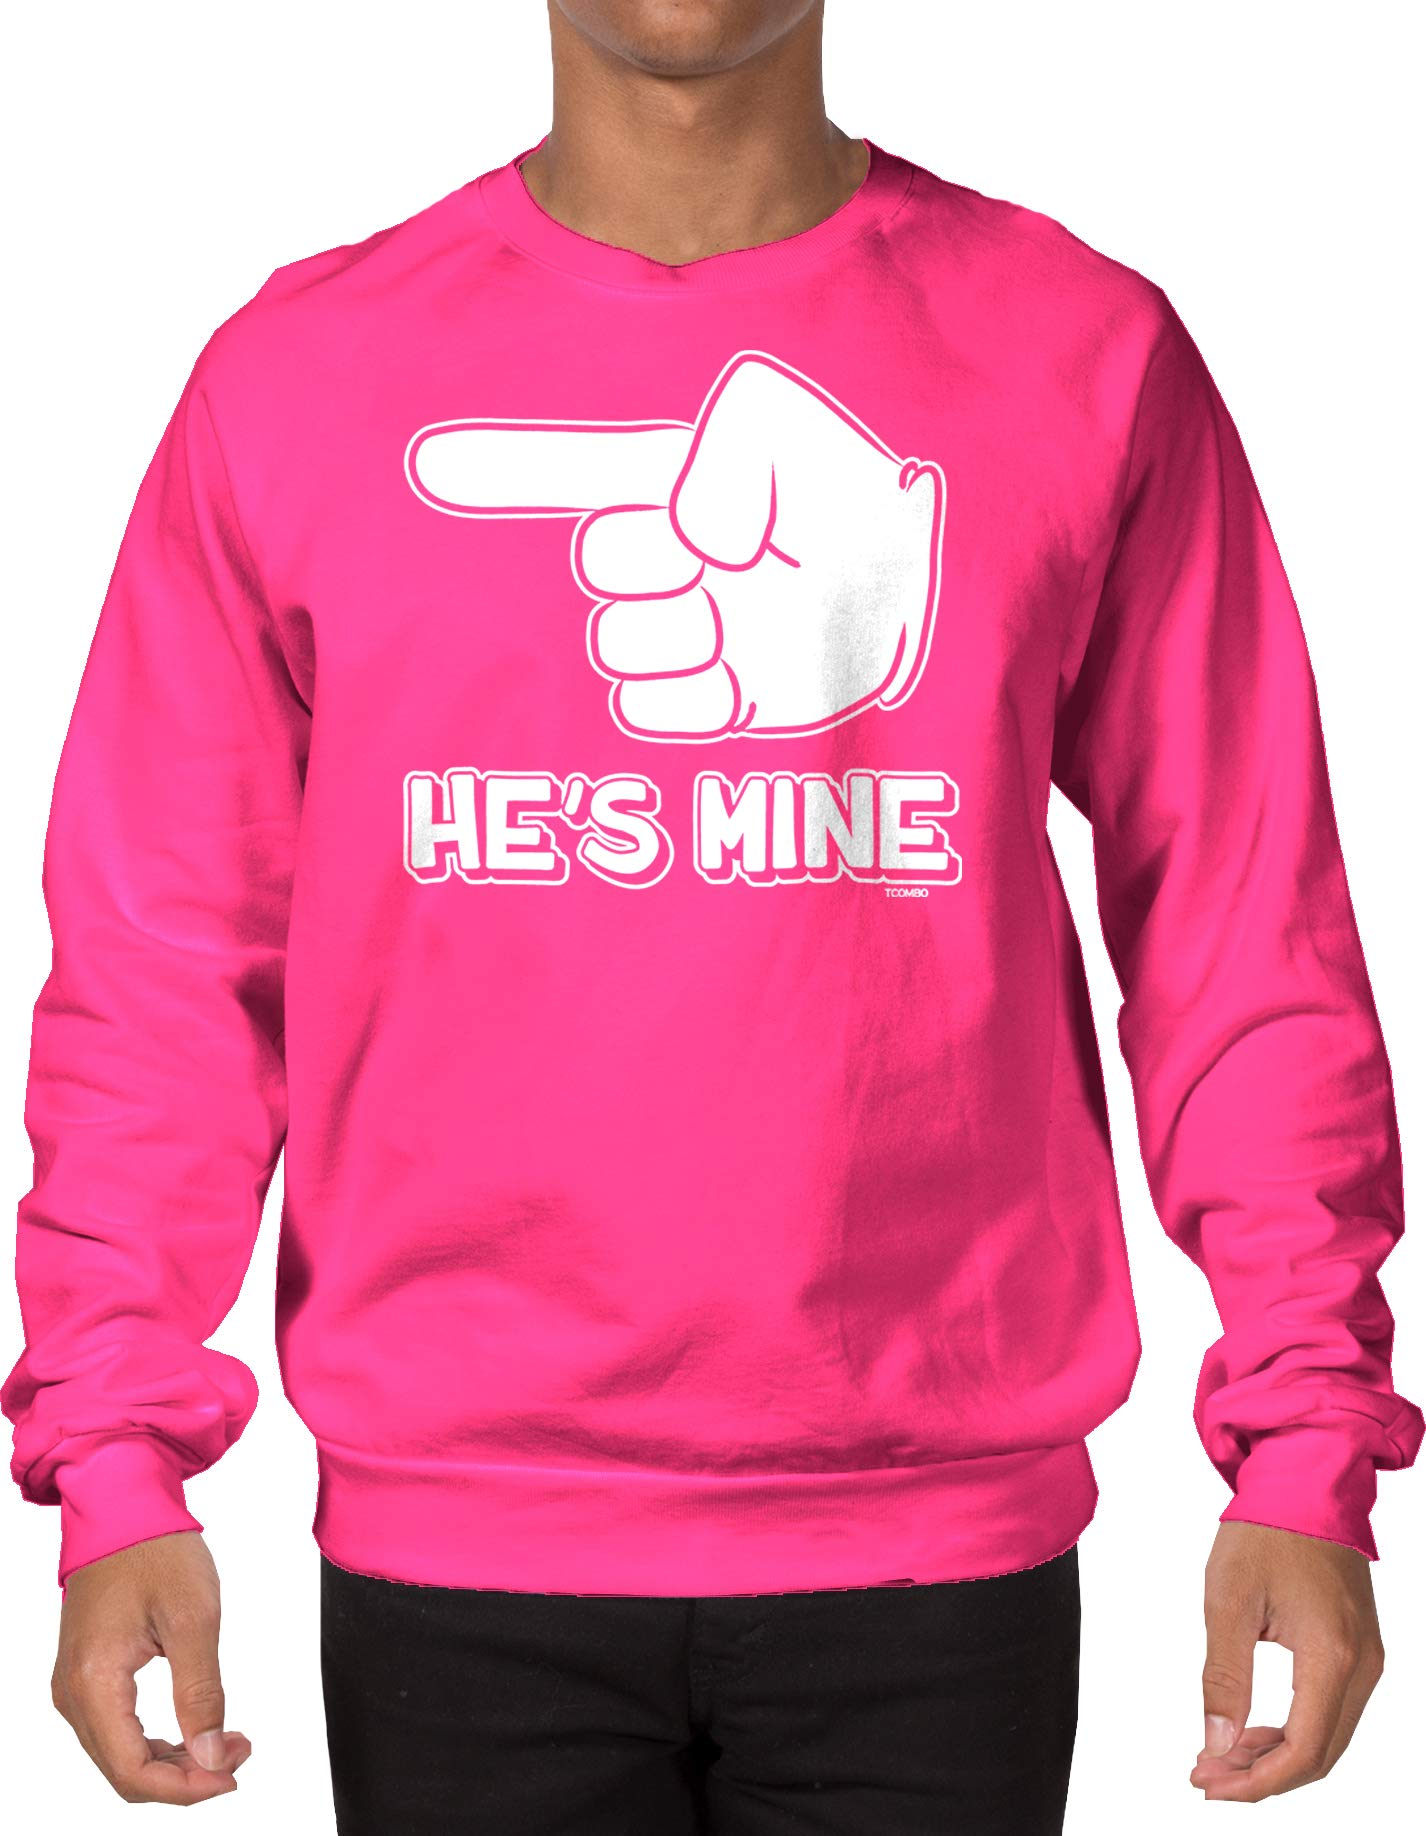 He's Mine Adult Crewneck Sweatshirt (Pink, Medium)